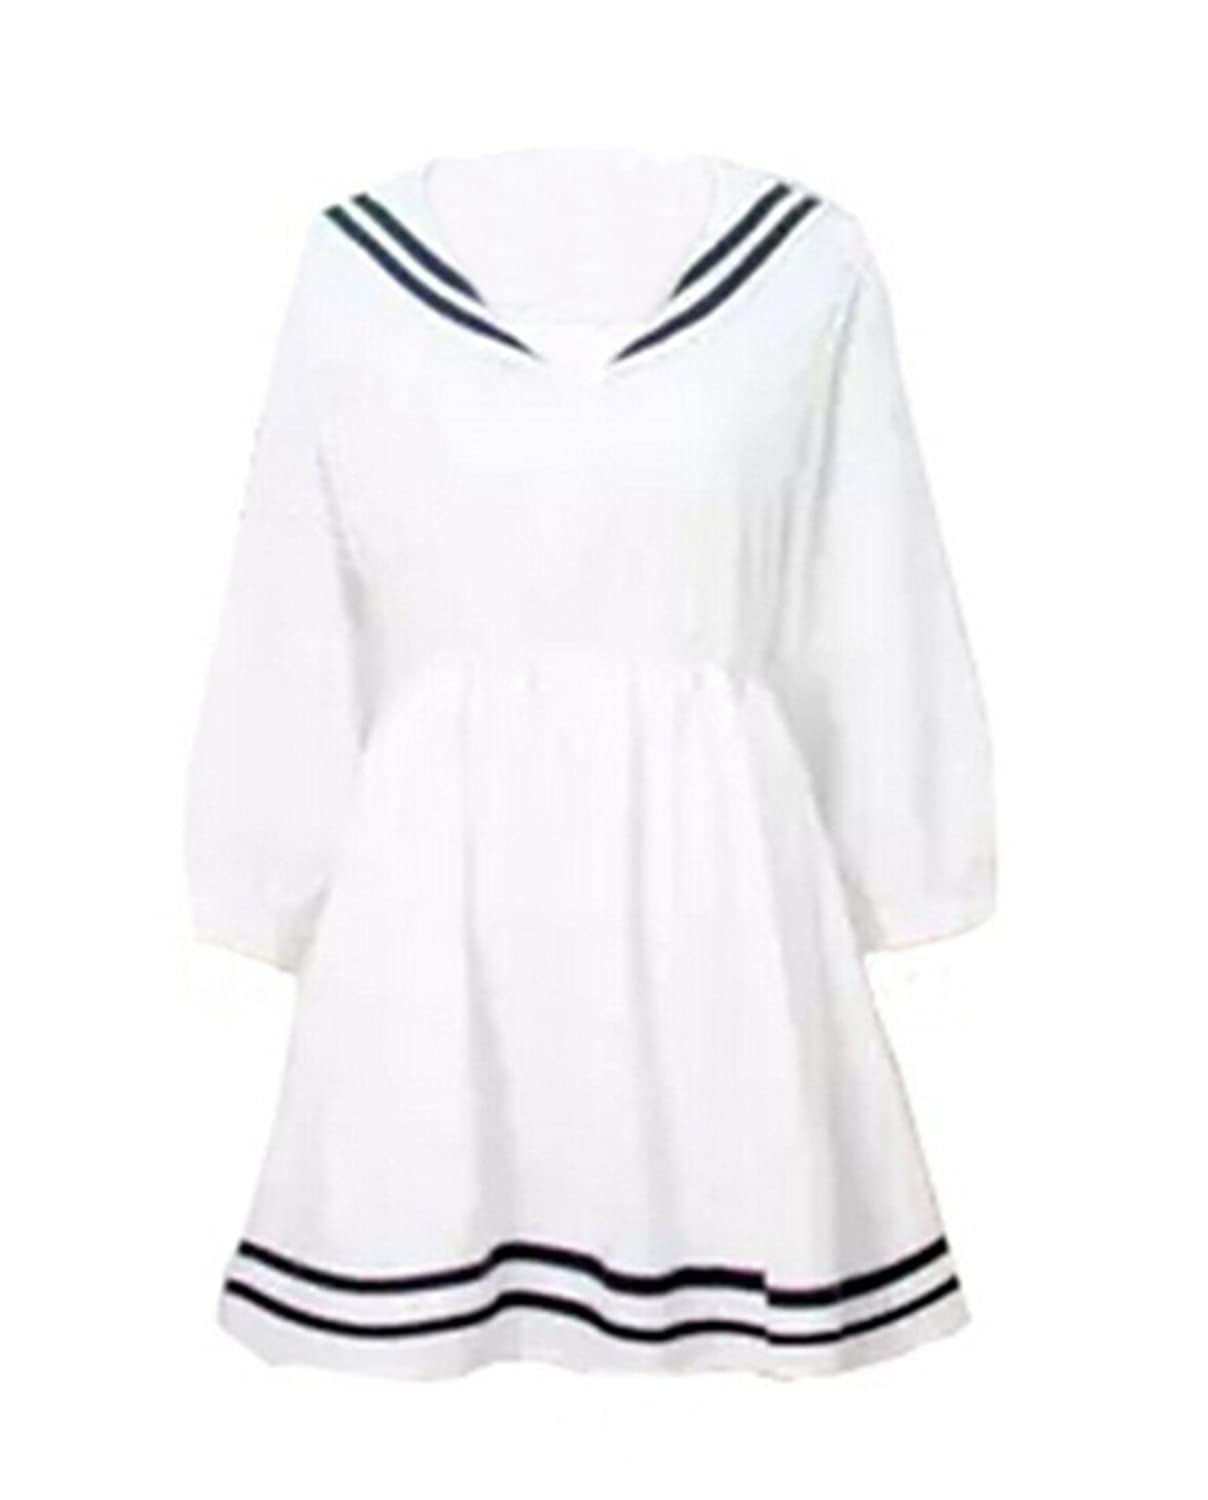 Vintage Style Children's Clothing: Girls, Boys, Baby, Toddler ROLECOS Girl Japanese Sailor Collar Lolita School Uniform Long Sleeves Dresses White $34.99 AT vintagedancer.com